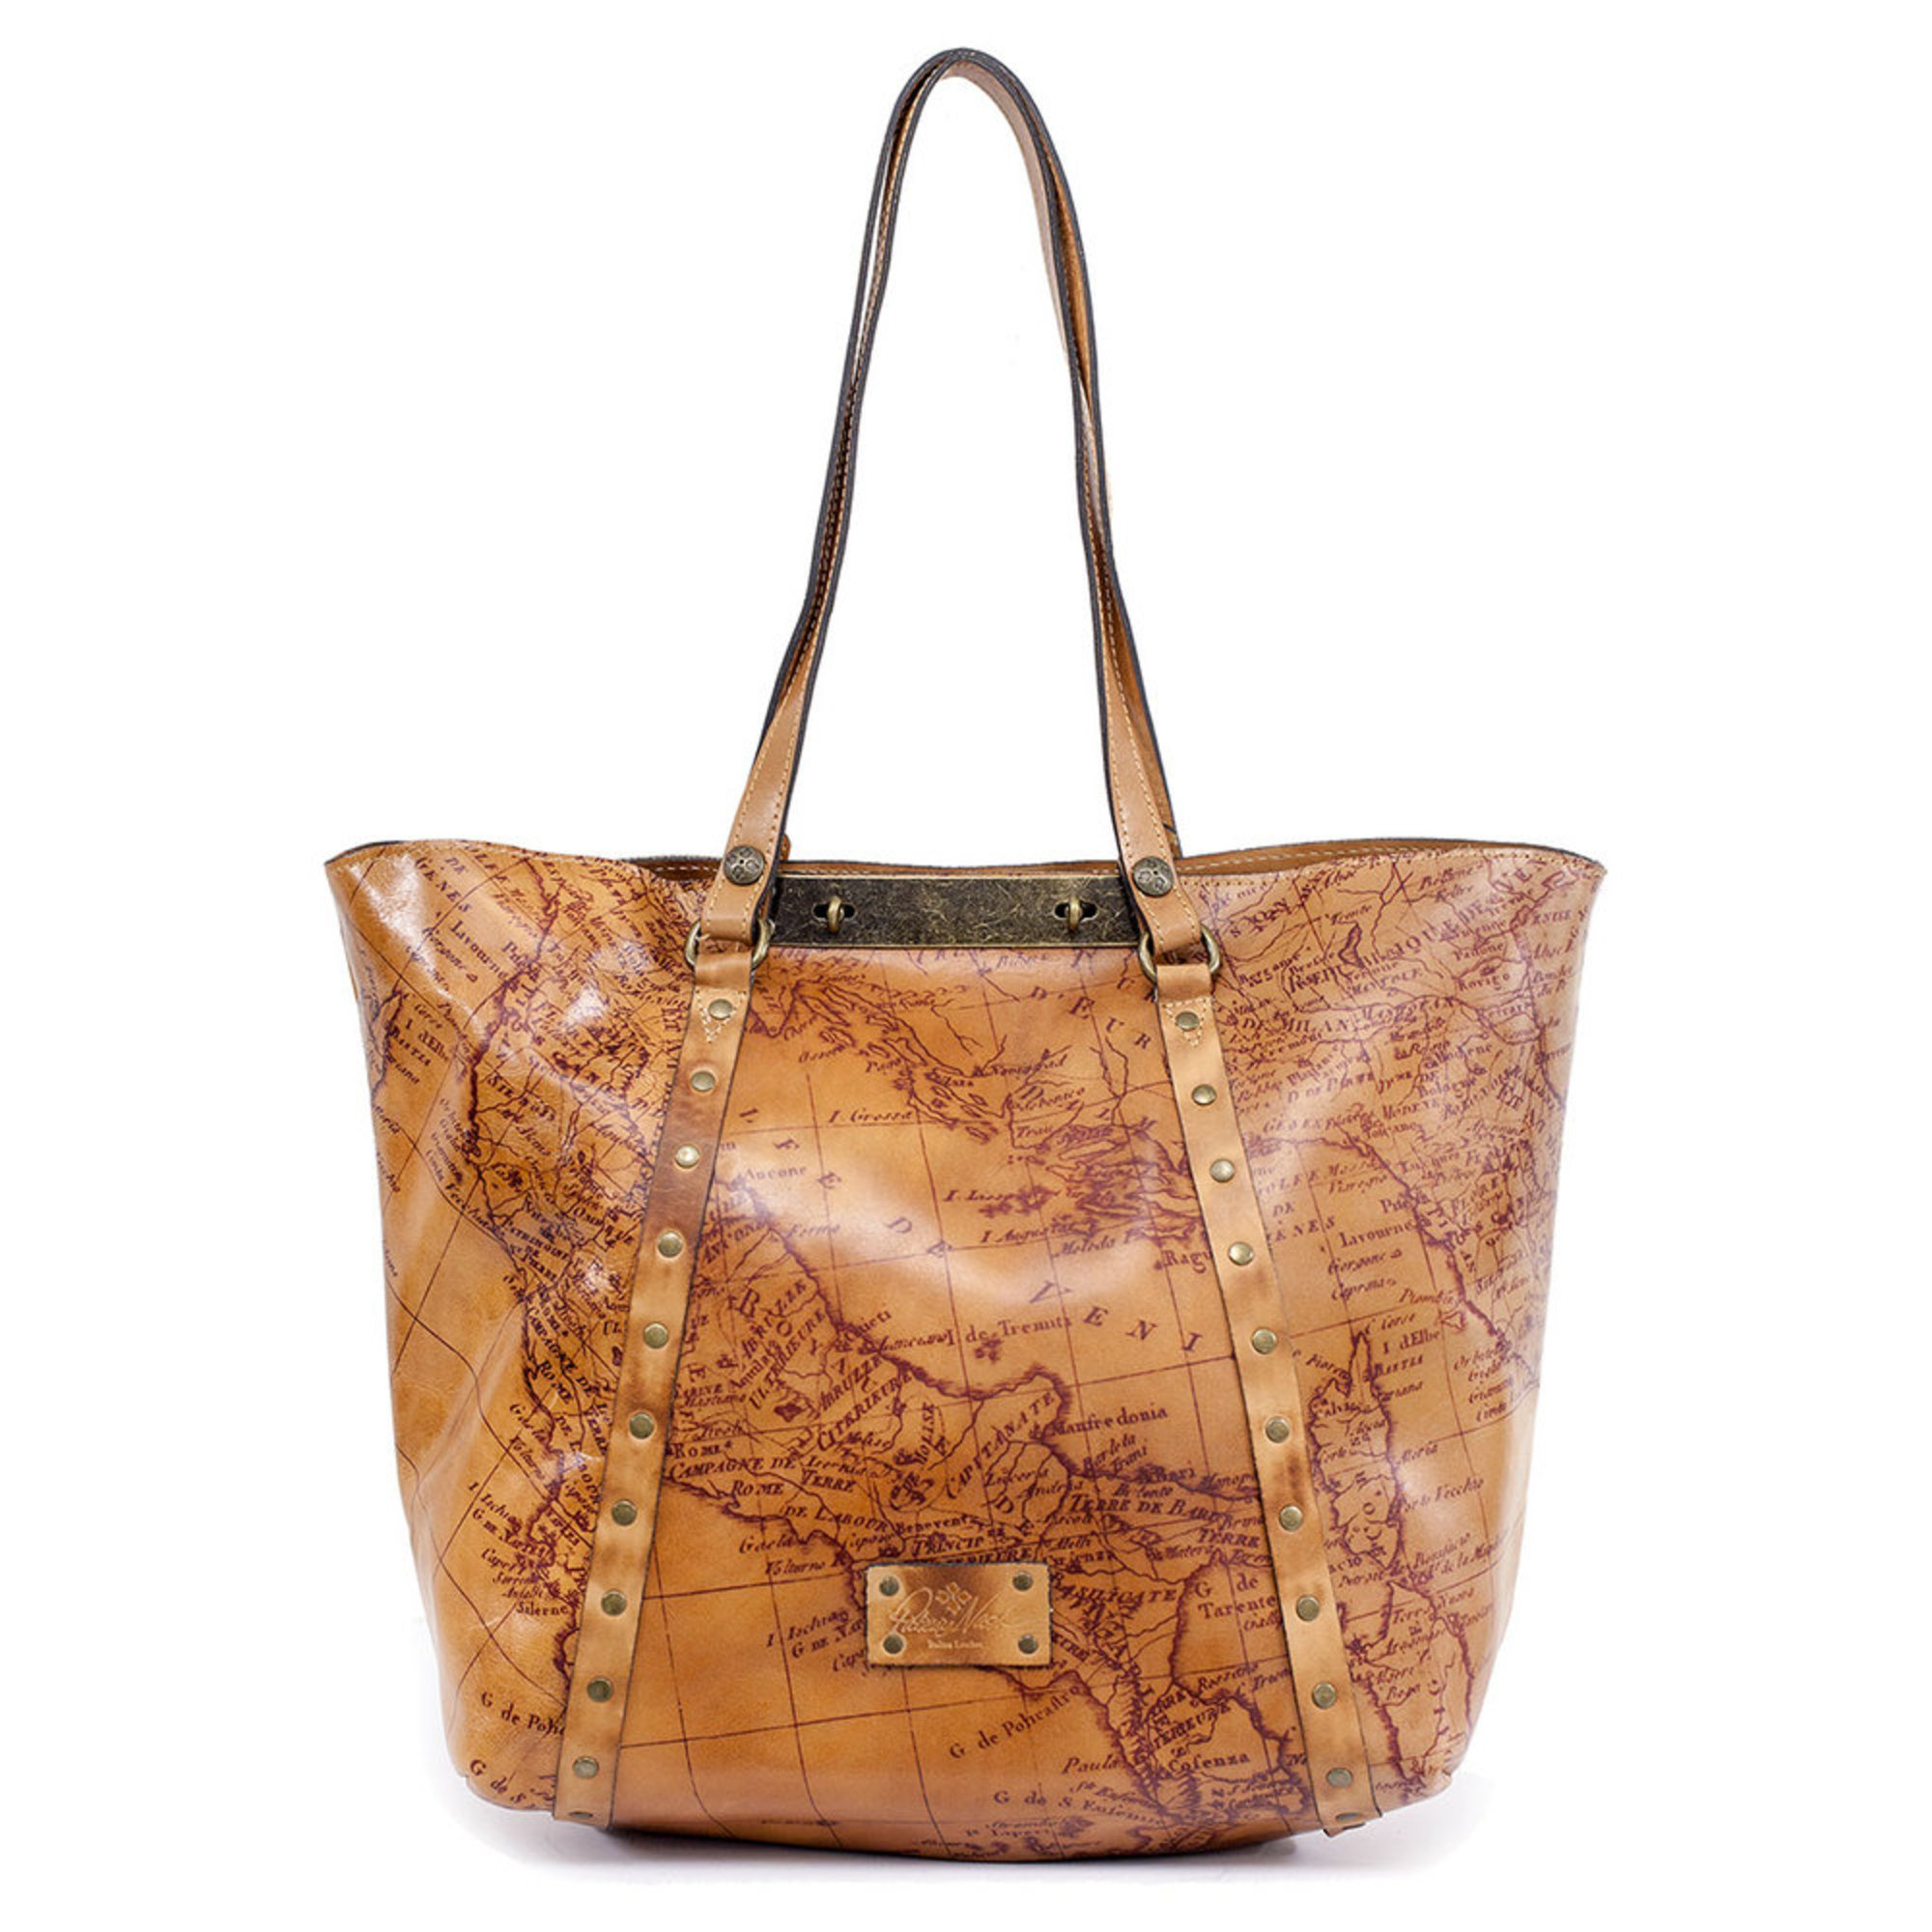 6220f45a0 Patricia Nash Benvenuto Tote Map Print Rust | Totes | Accessories ...